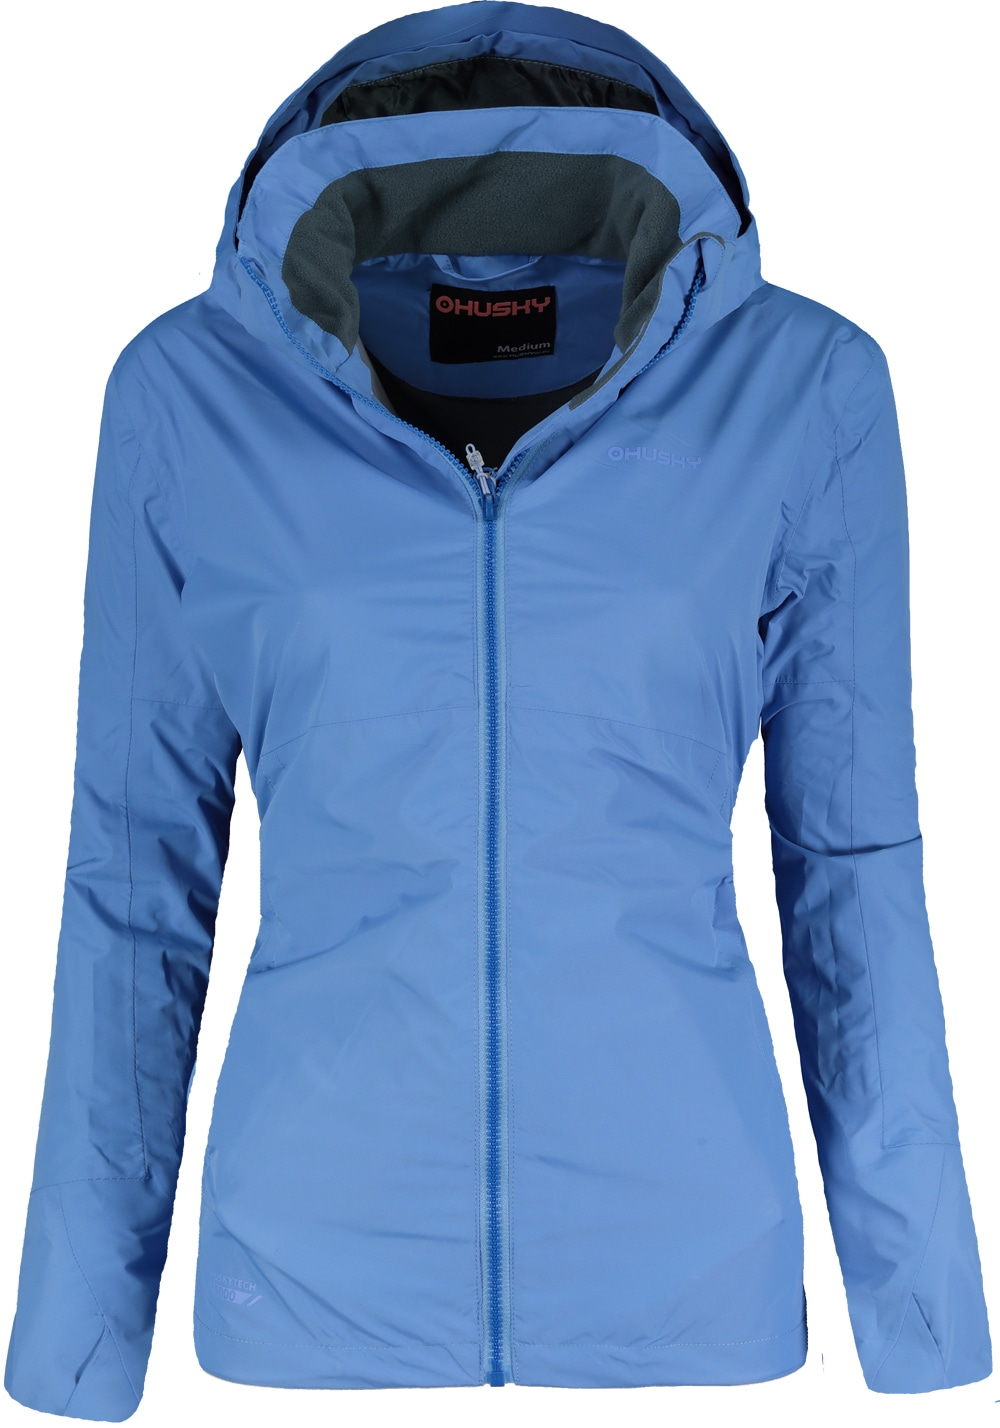 Women's jacket NELORY L